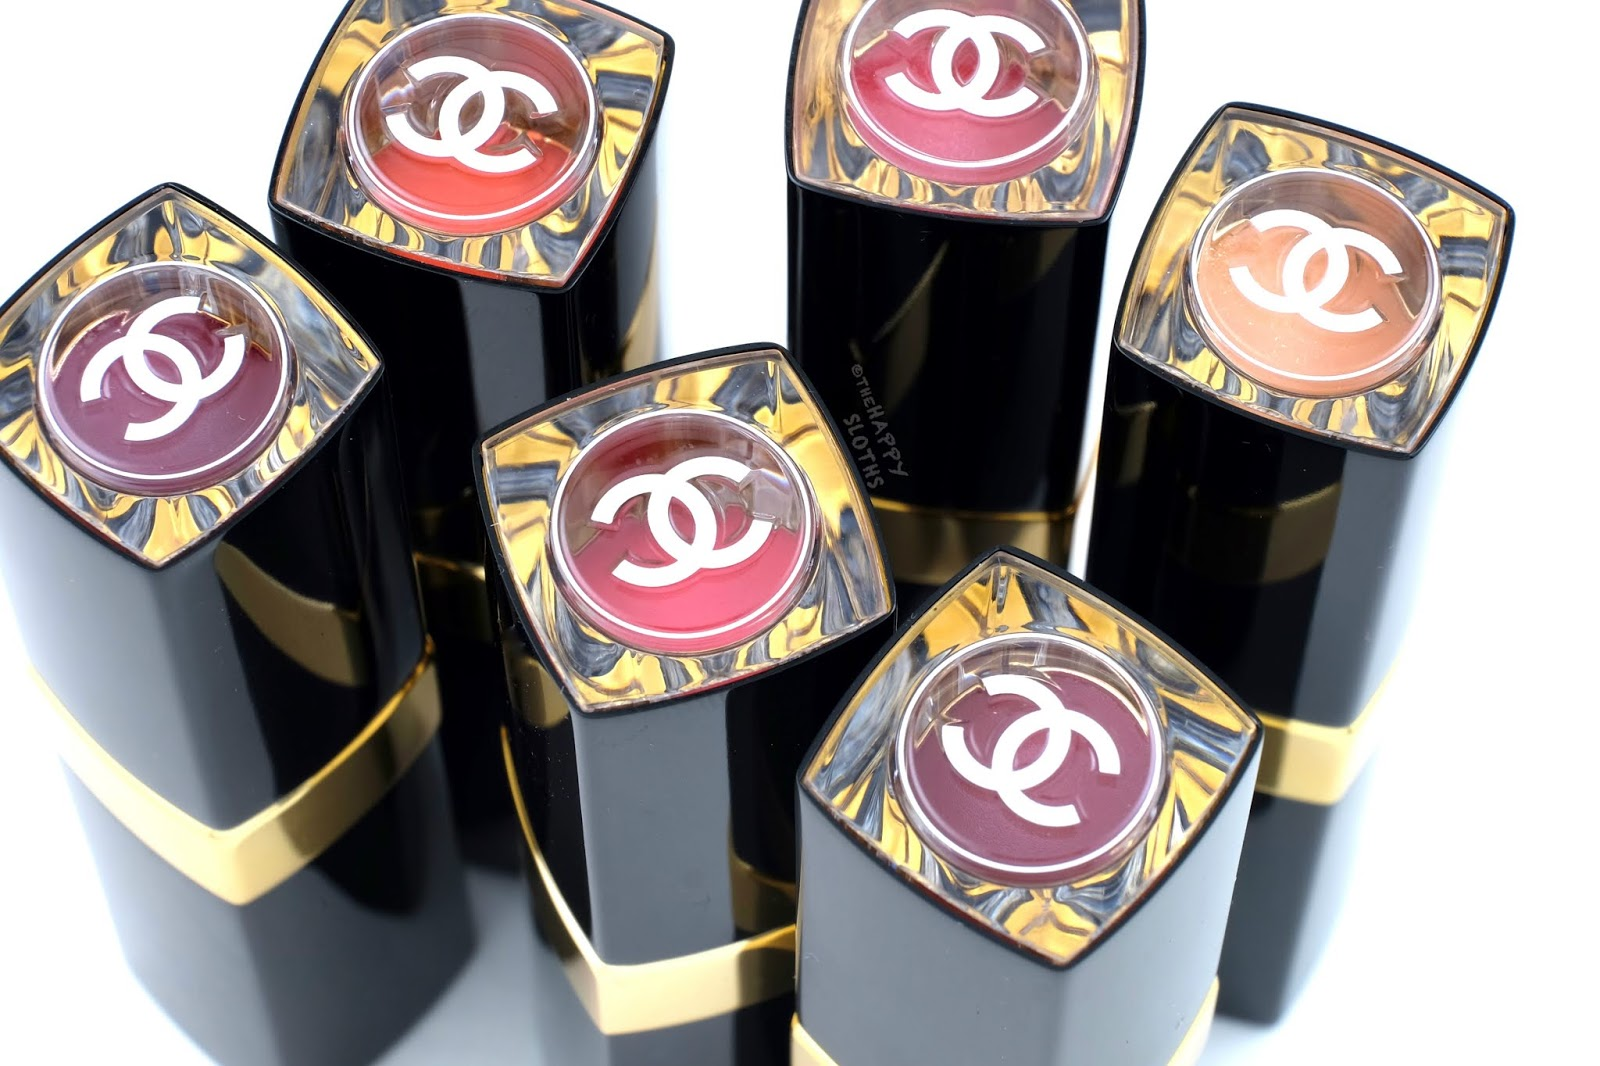 Chanel | Rouge Coco Flash Lipstick: Review and Swatches